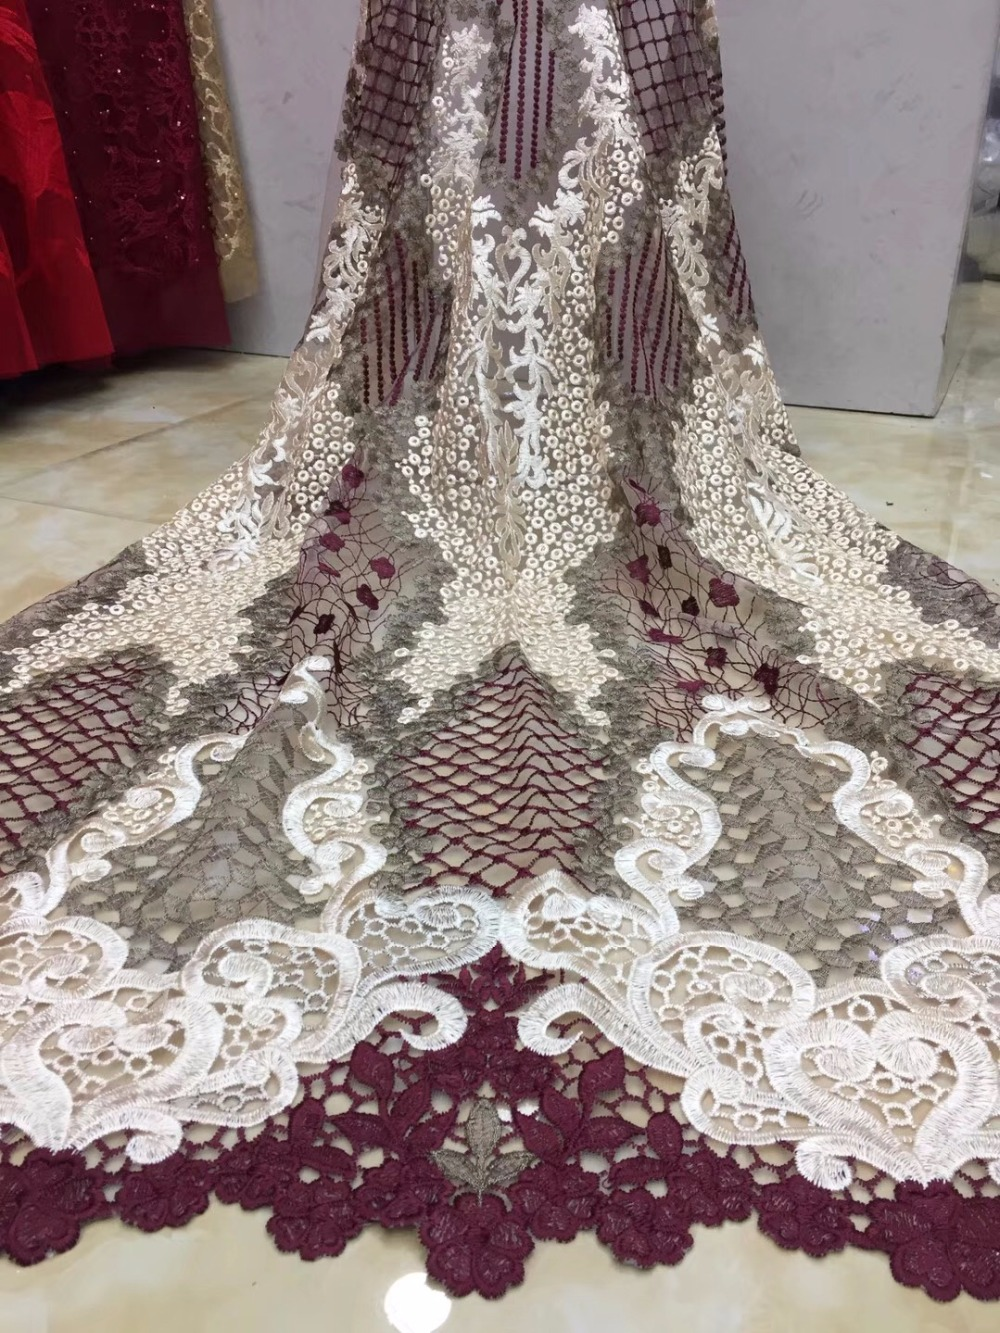 2019 High Quality Nigerian Lace Fabrics African French Net Lace Fabric Embroidered Tulle Mesh Lace Fabric-in Lace from Home & Garden    3